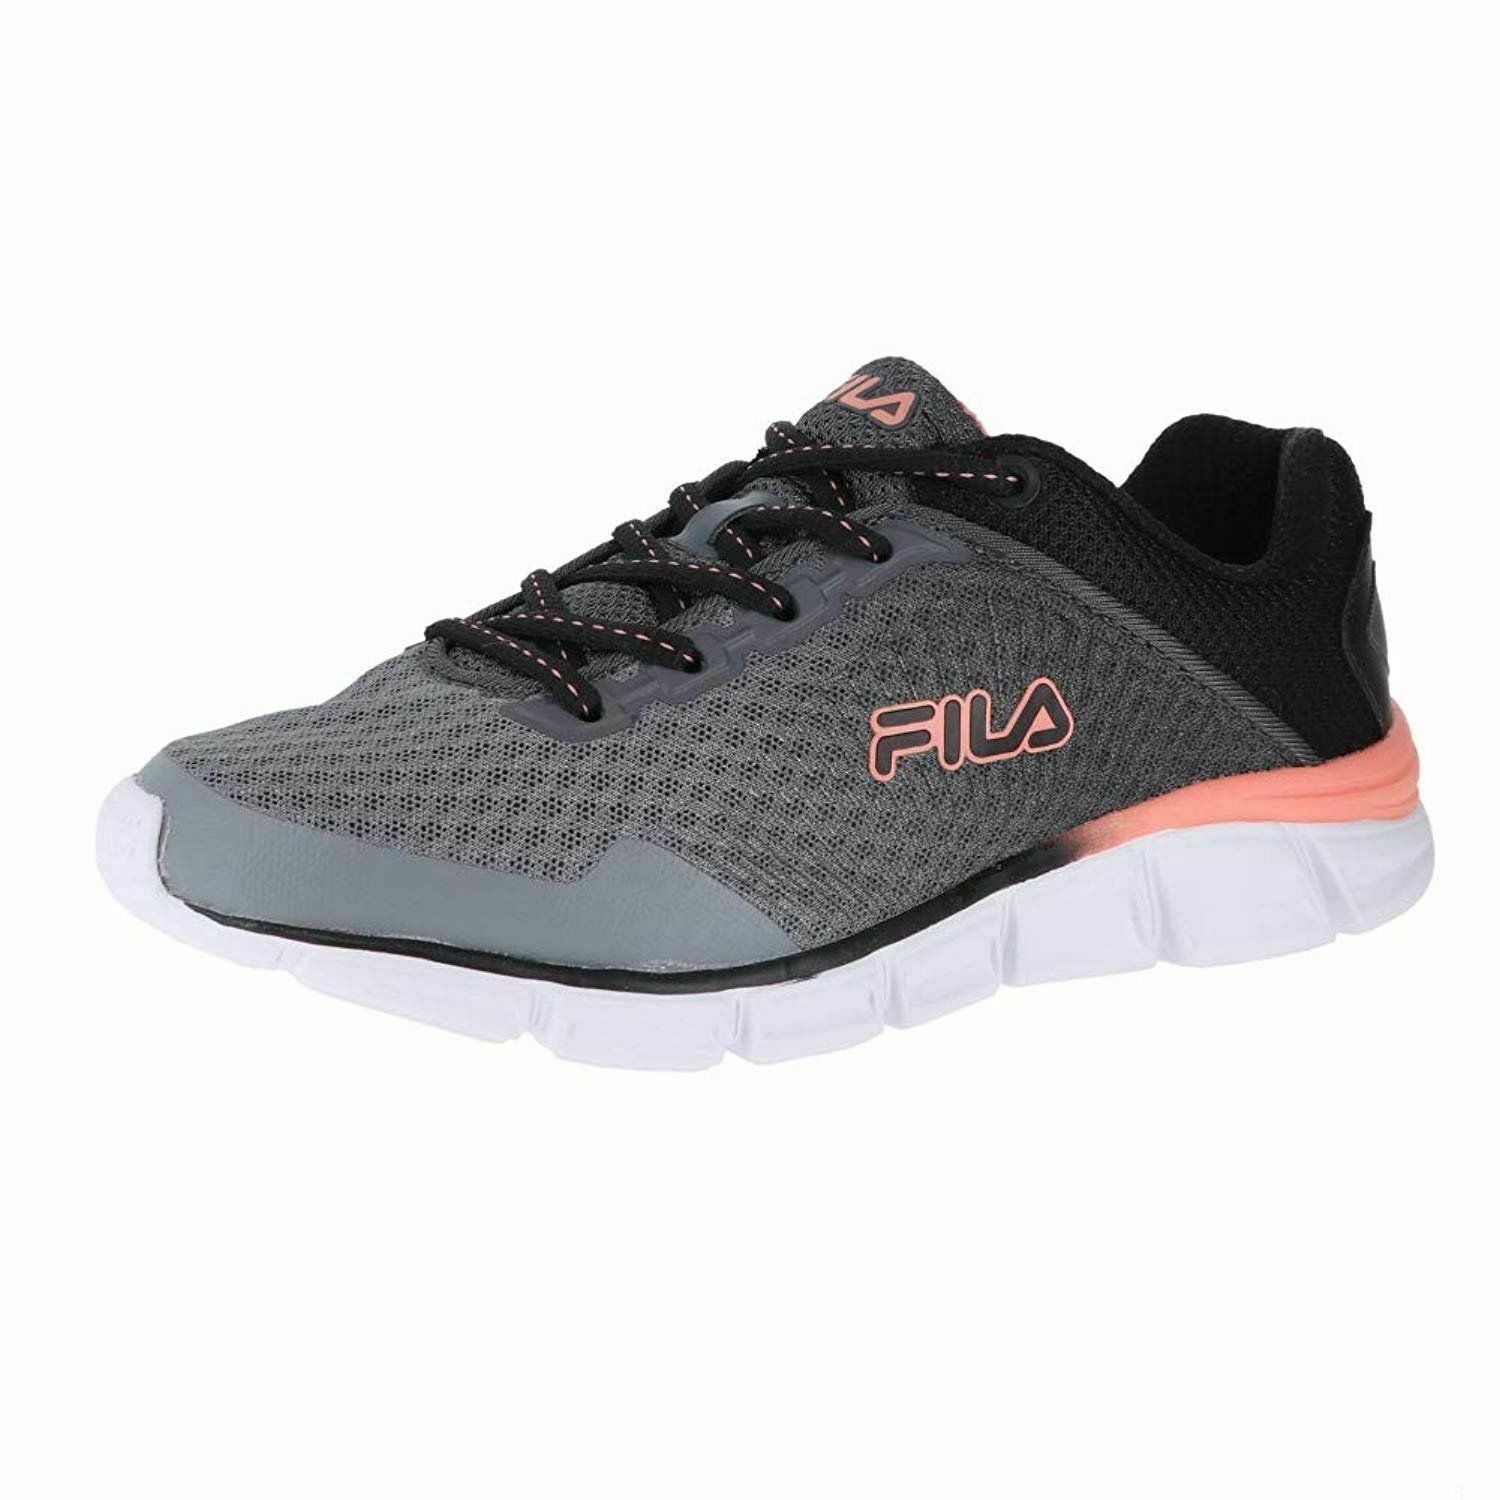 FILA Memory Countdown 5   Running shoes     Women's   G   fast delivery and free shipping on all orders